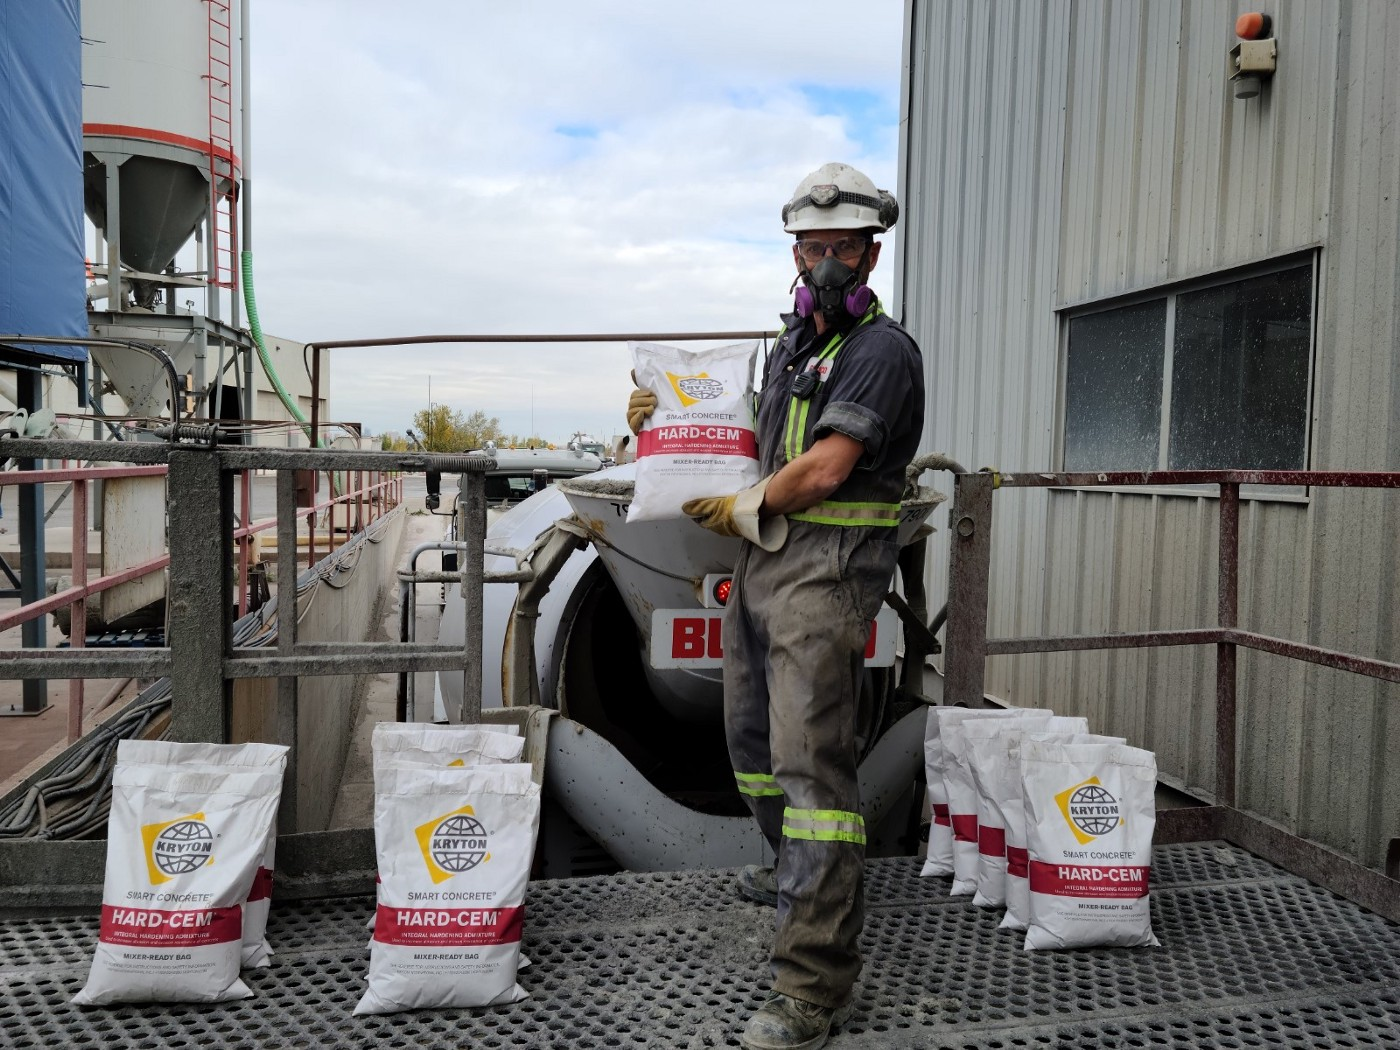 A construction worker is standing on a platform behind a ready-mix truck and holding a bag of the integral concrete hardening admixture, Hard-Cem, while being surrounded by several more bags that are lying on the ground.